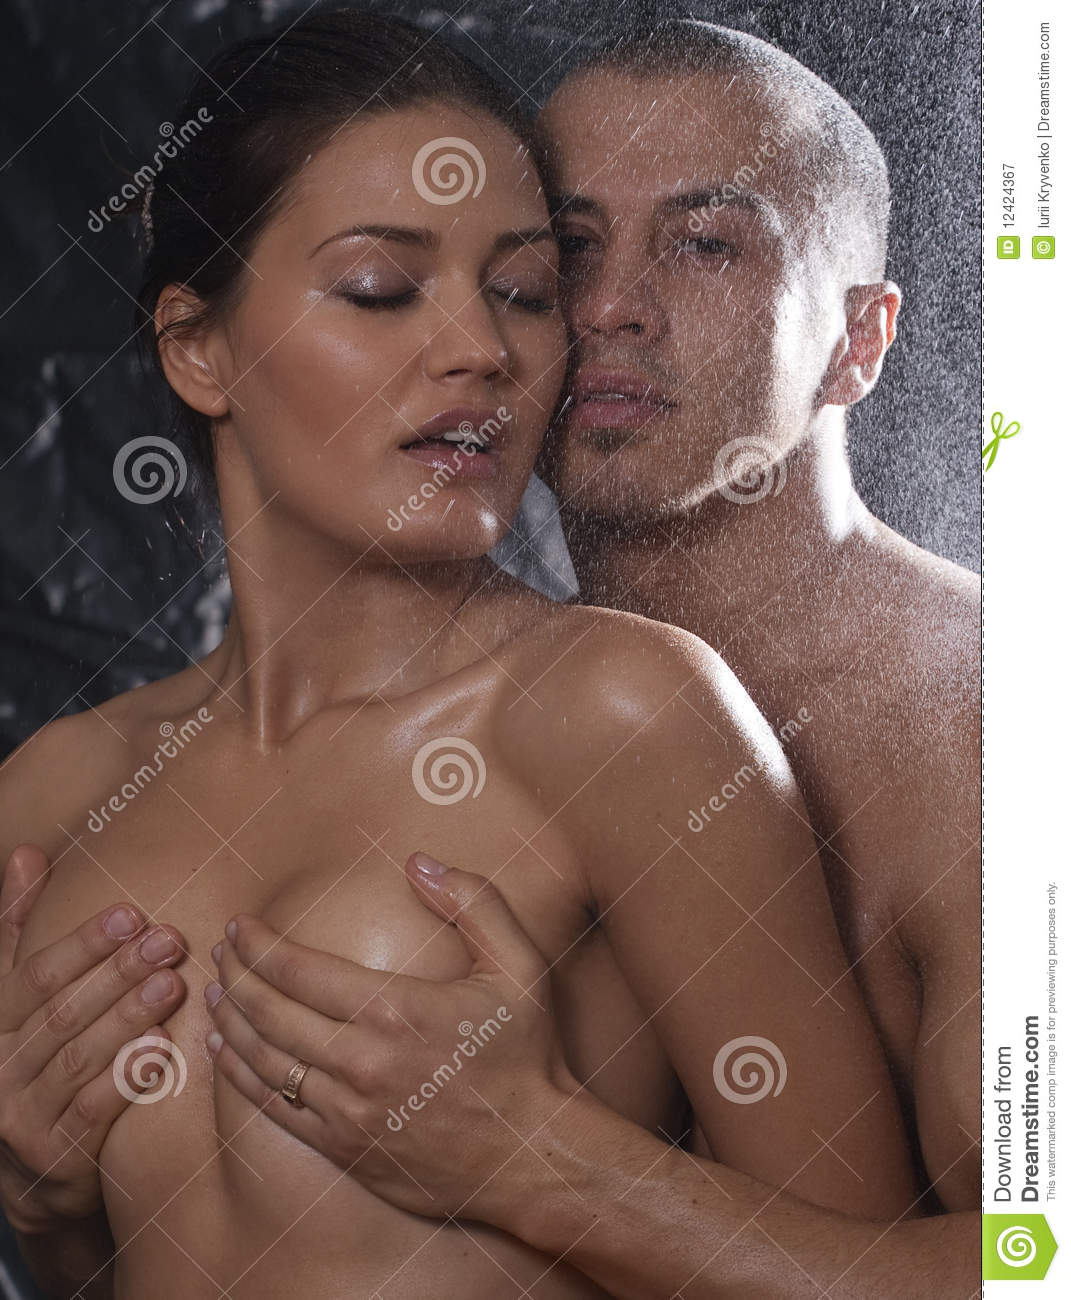 People having sex in public porn